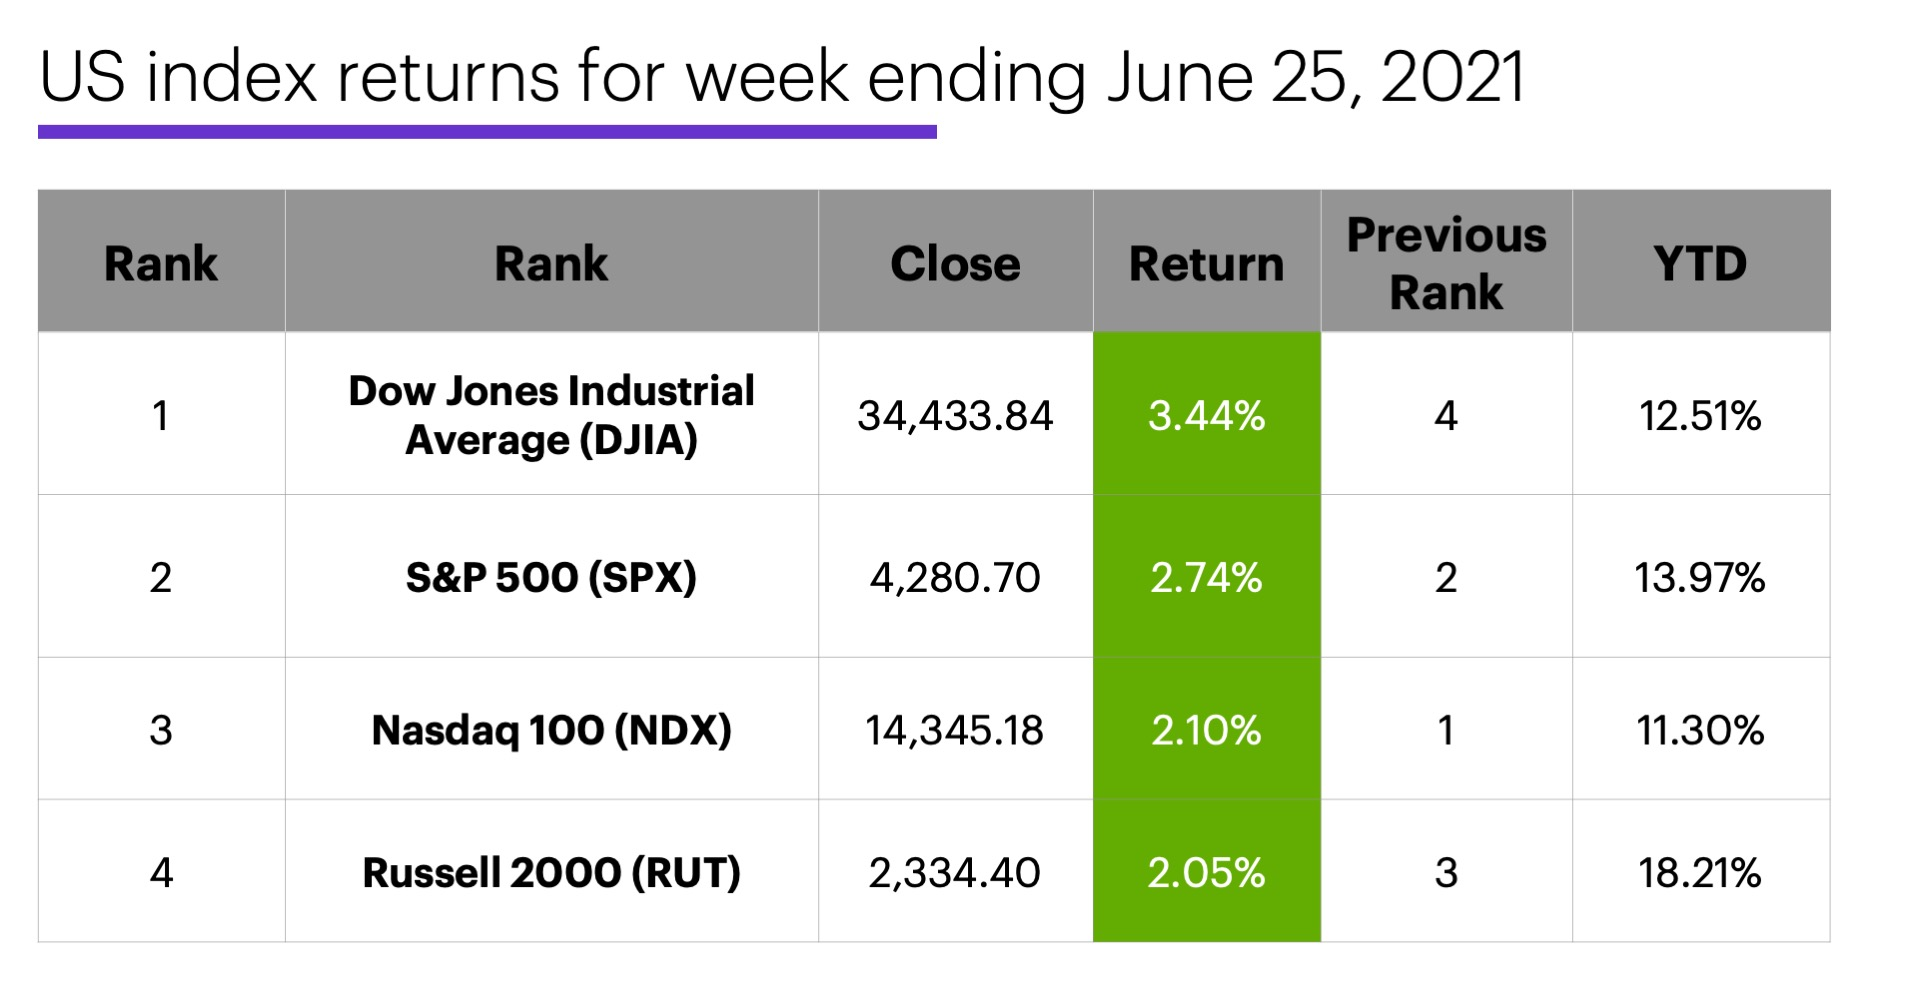 US stock index performance table for week ending 6/25/20. S&P 500 (SPX), Nasdaq 100 (NDX), Russell 2000 (RUT), Dow Jones Industrial Average (DJIA).